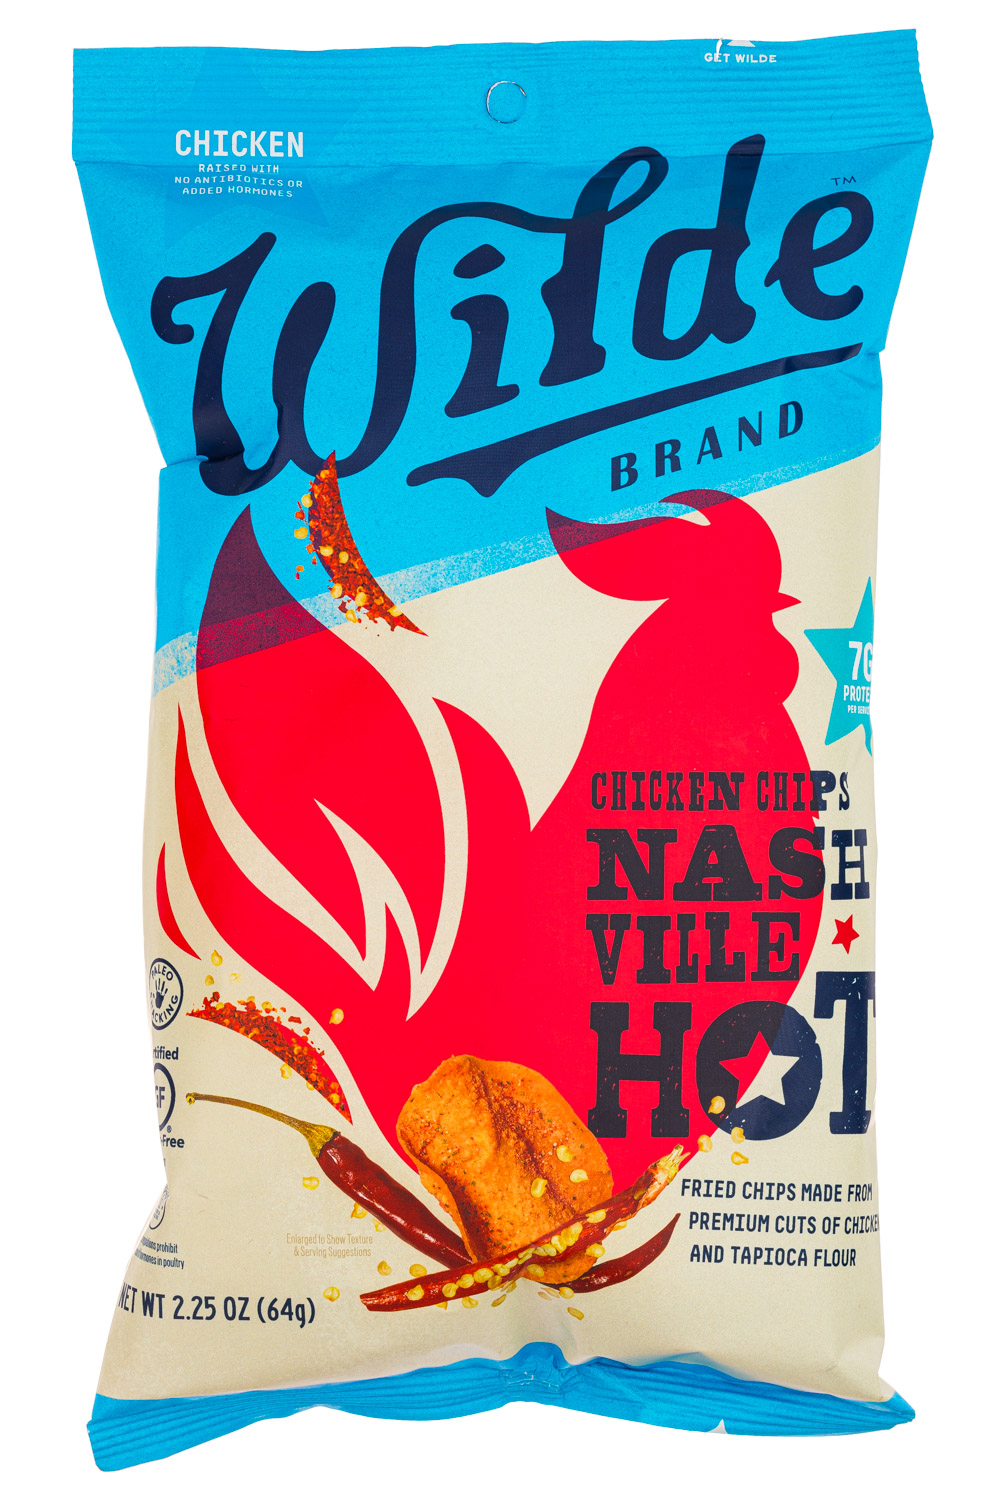 Nash Ville Hot Chicken Chips